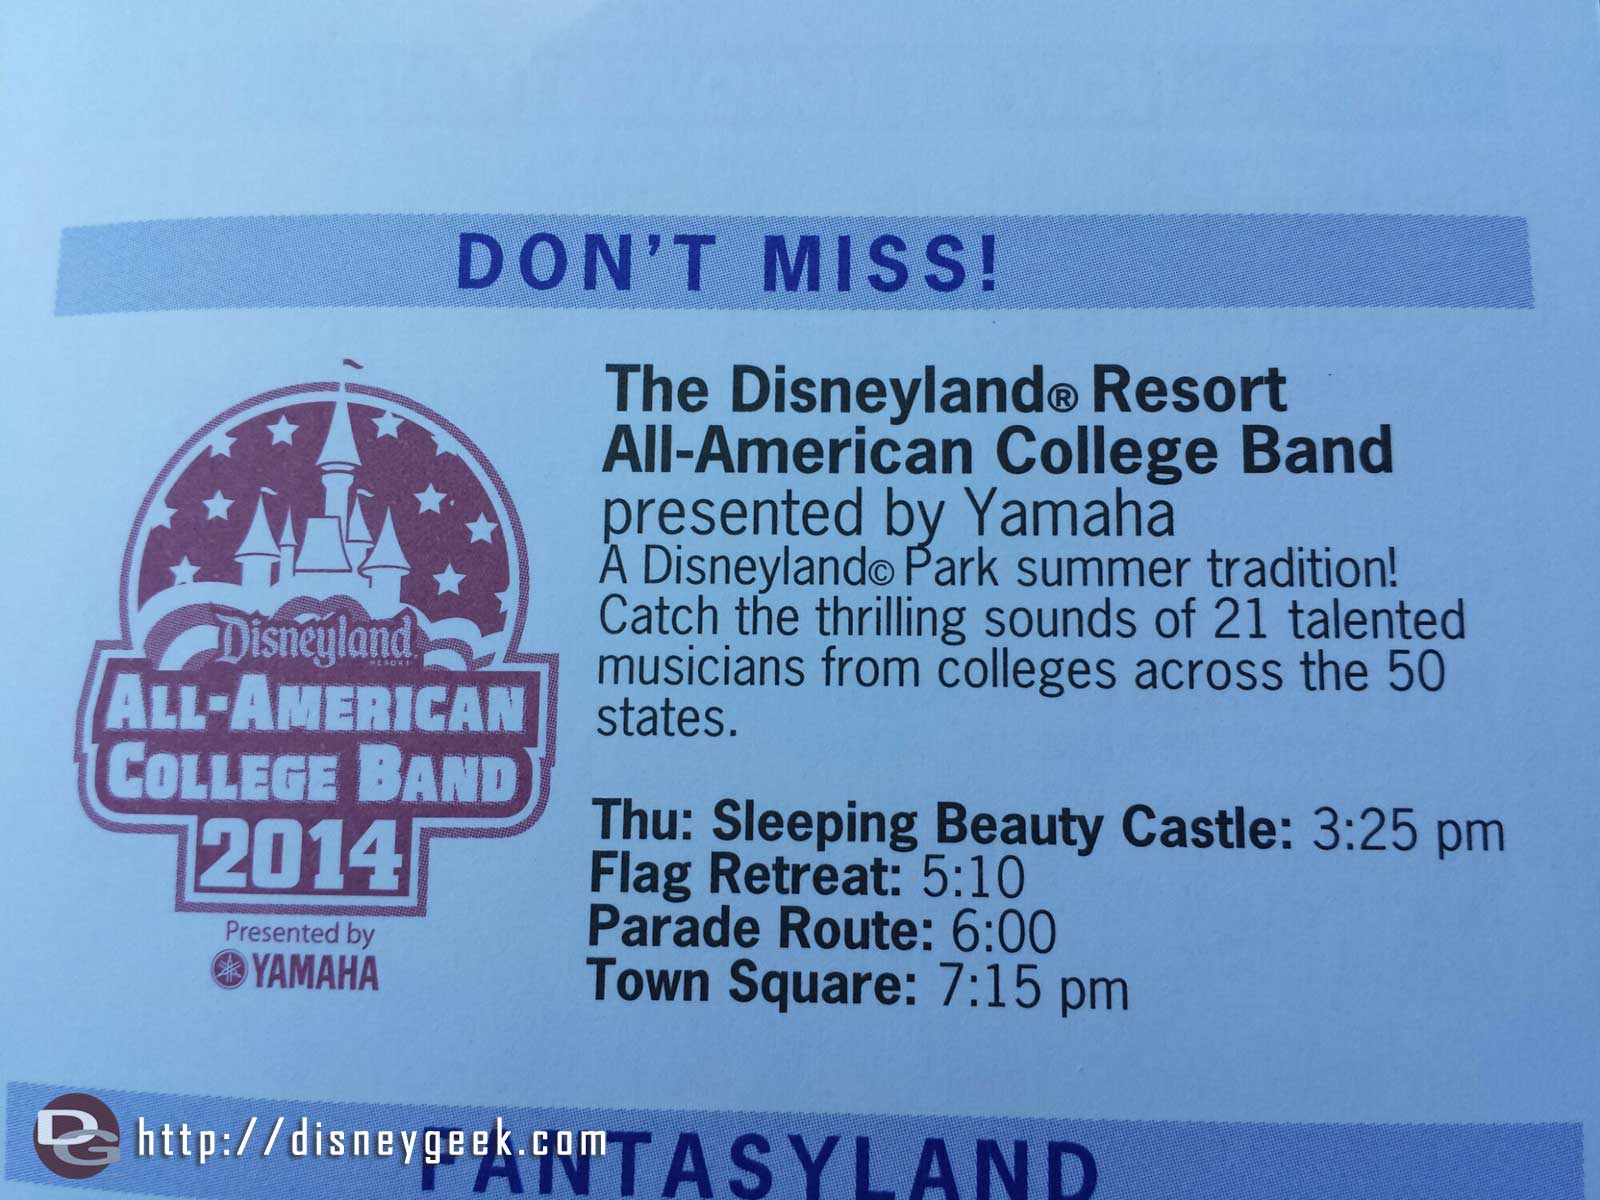 The Disneyland Resort All-American College Band returns Thursday.  Here is their schedule at Disneyland.